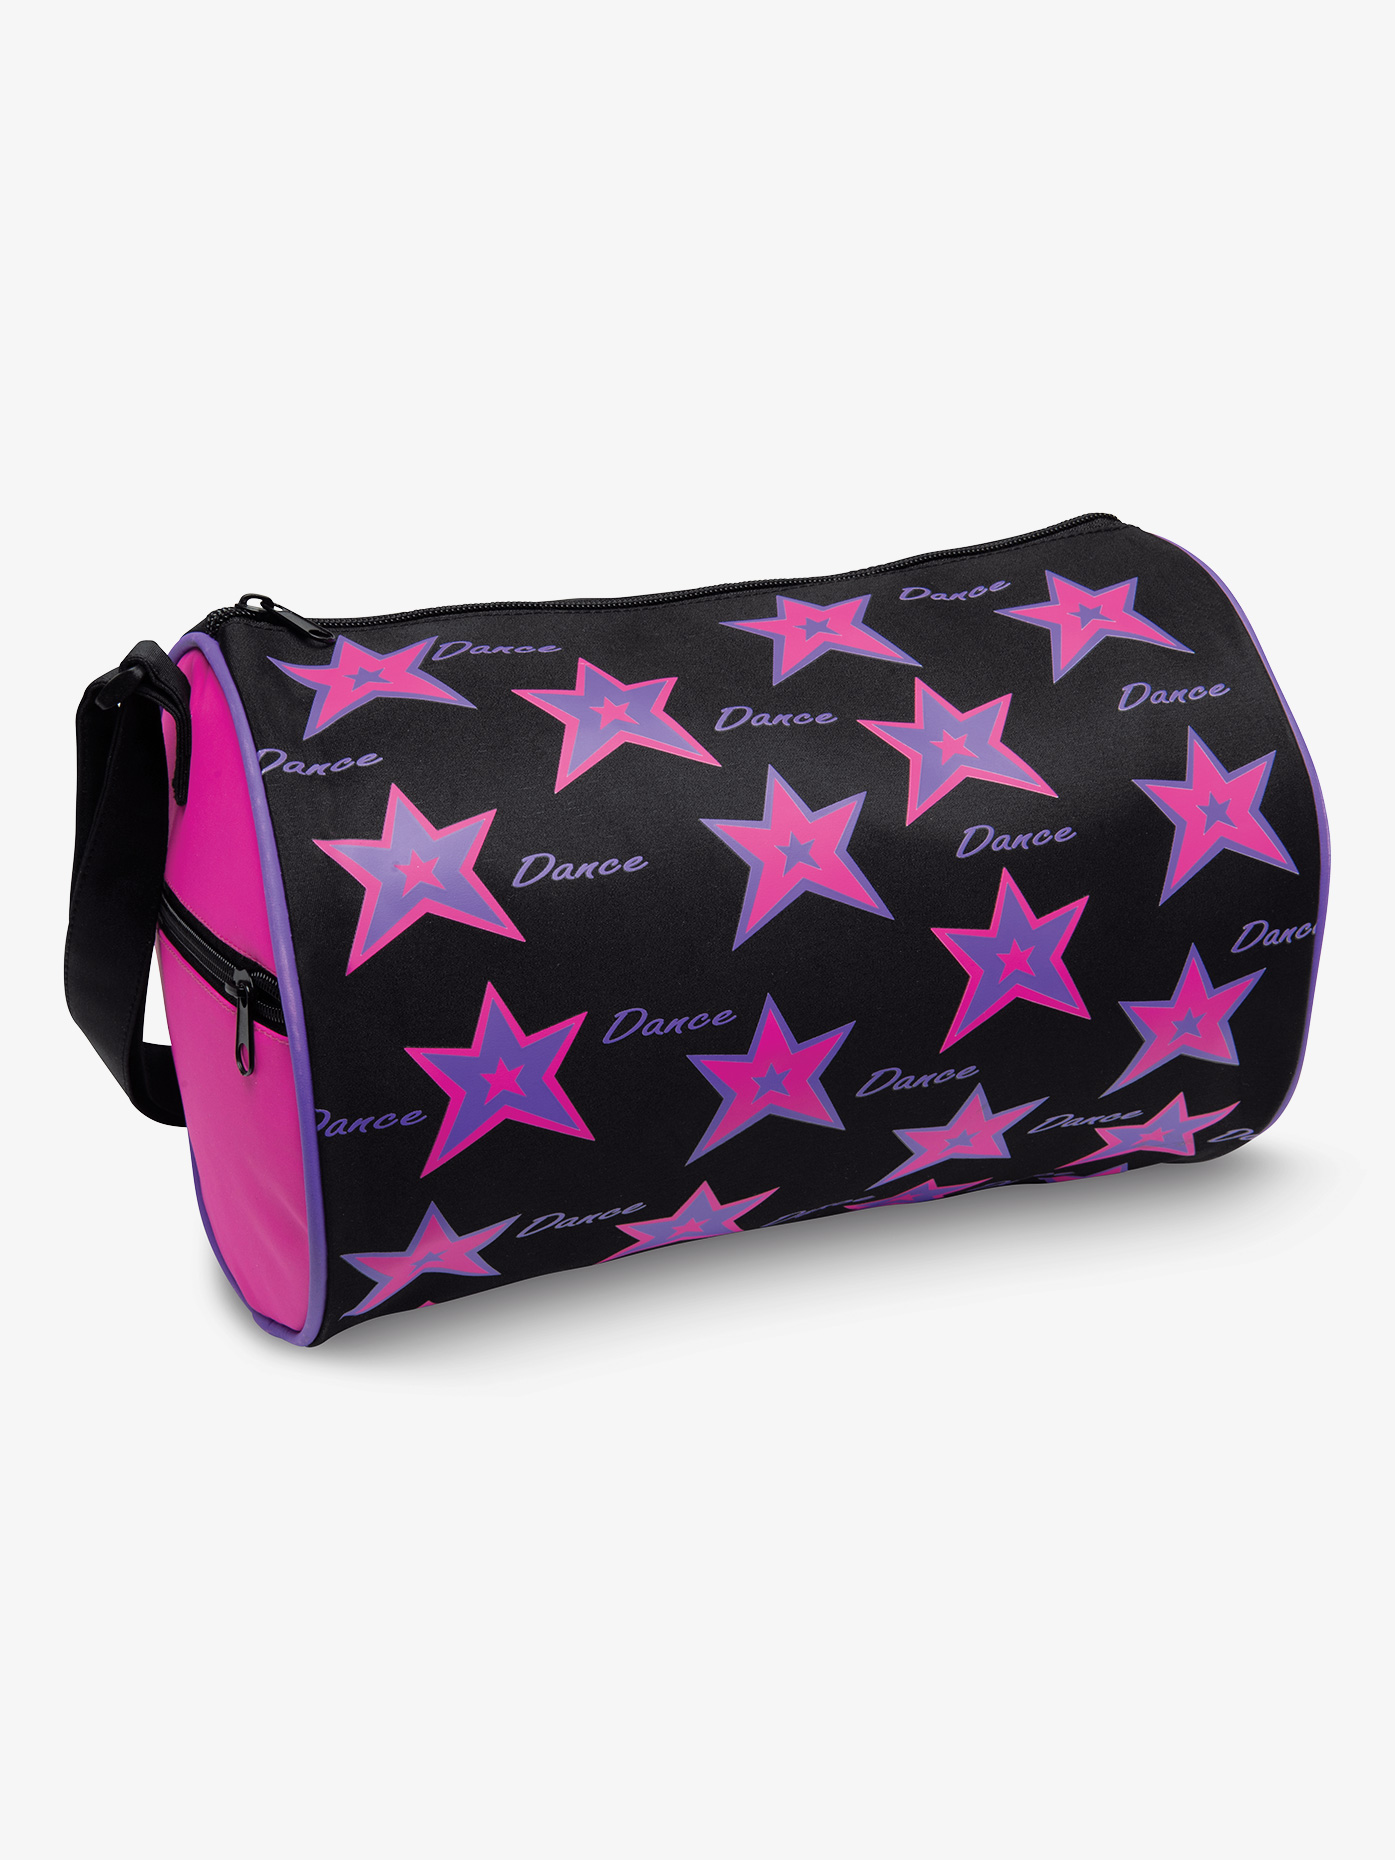 DansBagz Star Dance Duffel Bag B970